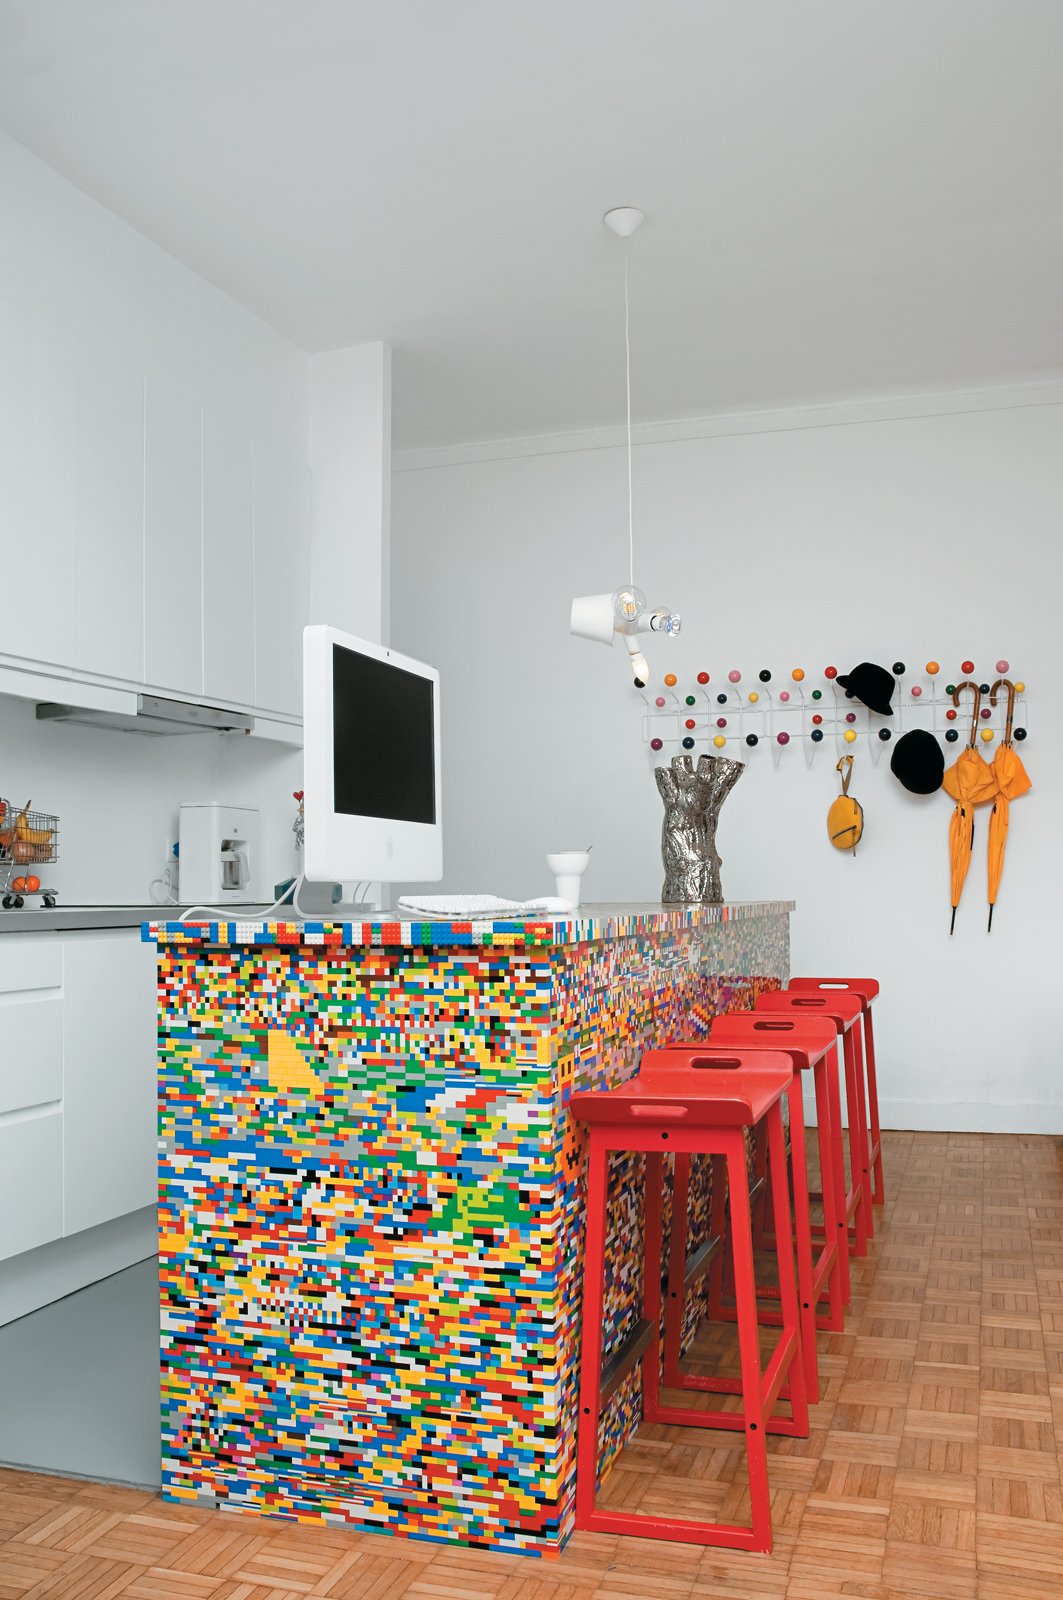 Simon Pillard and Philippe Rossetti's Lego kitchen island